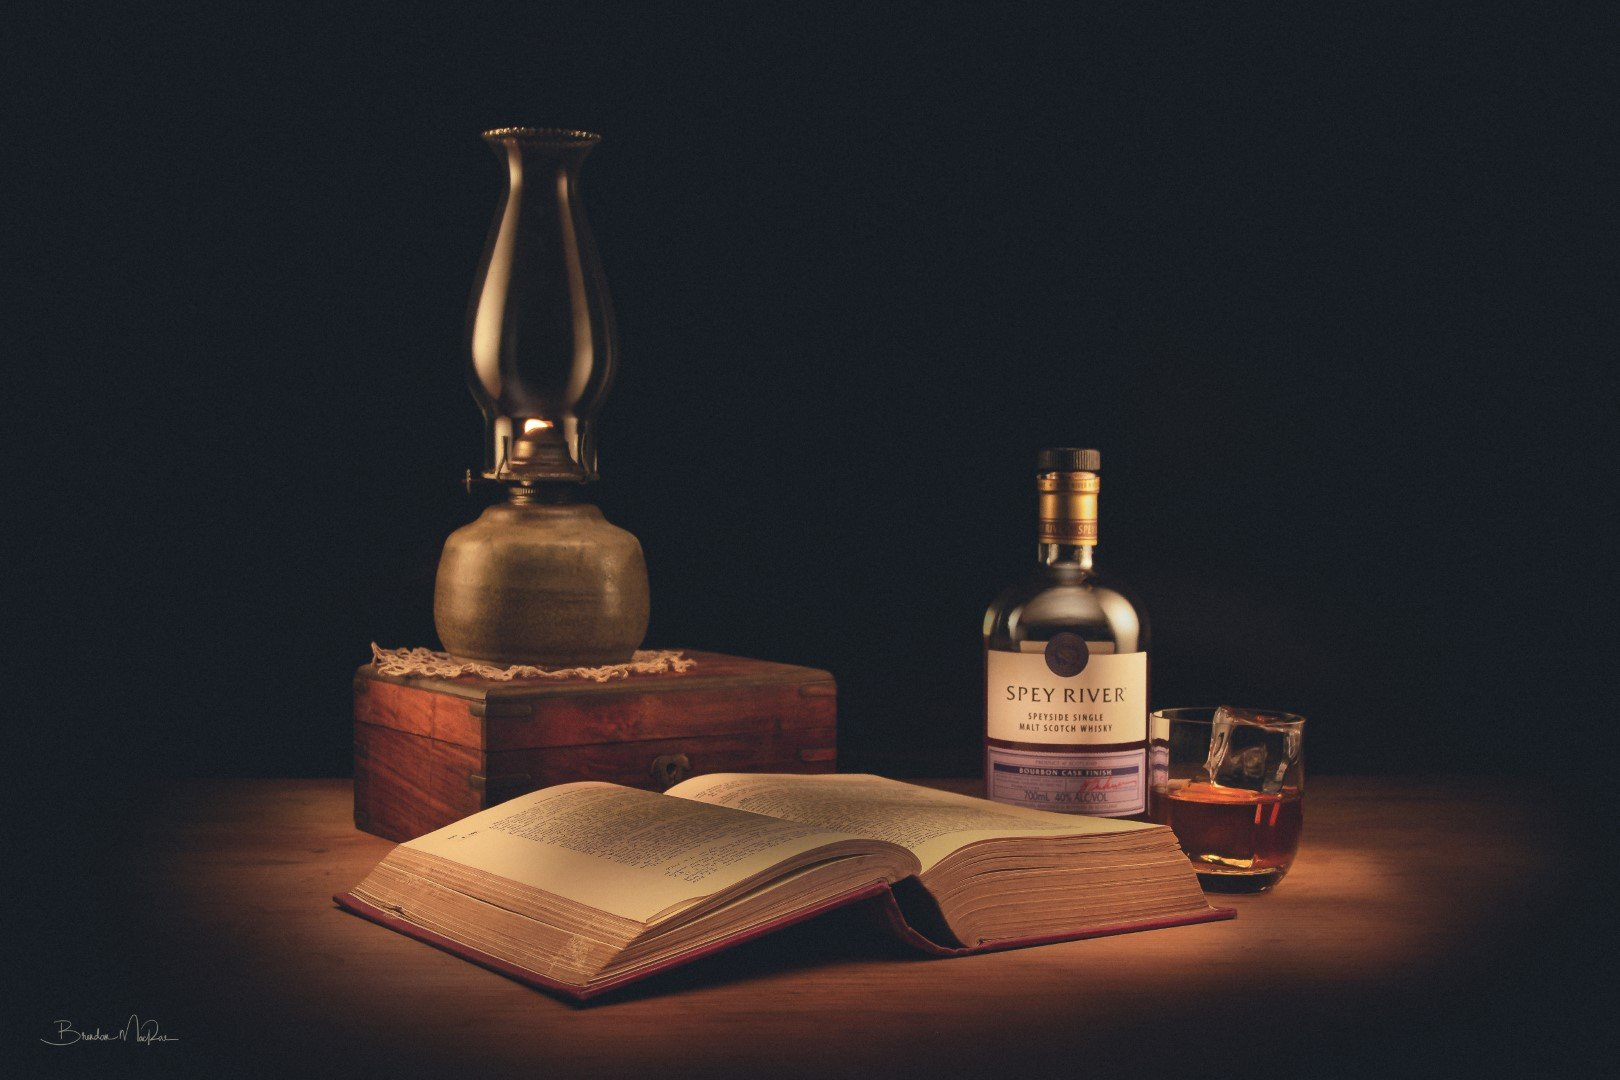 Whisky and book